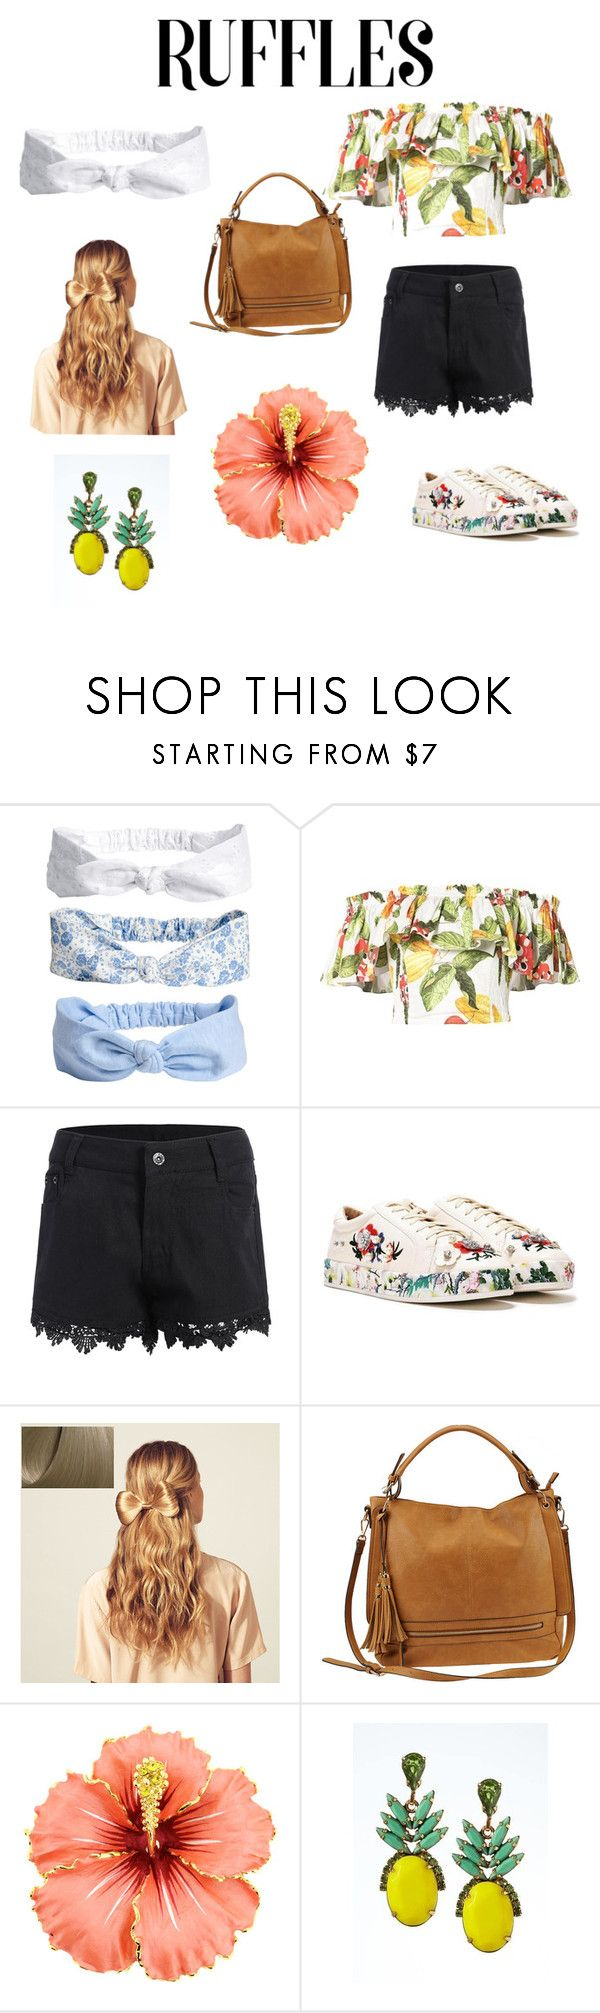 """""""Tropical Ruffles"""" by musicaltheater ❤ liked on Polyvore featuring Isolda, Nasty Gal, Hershesons, Urban Expressions and Banana Republic"""